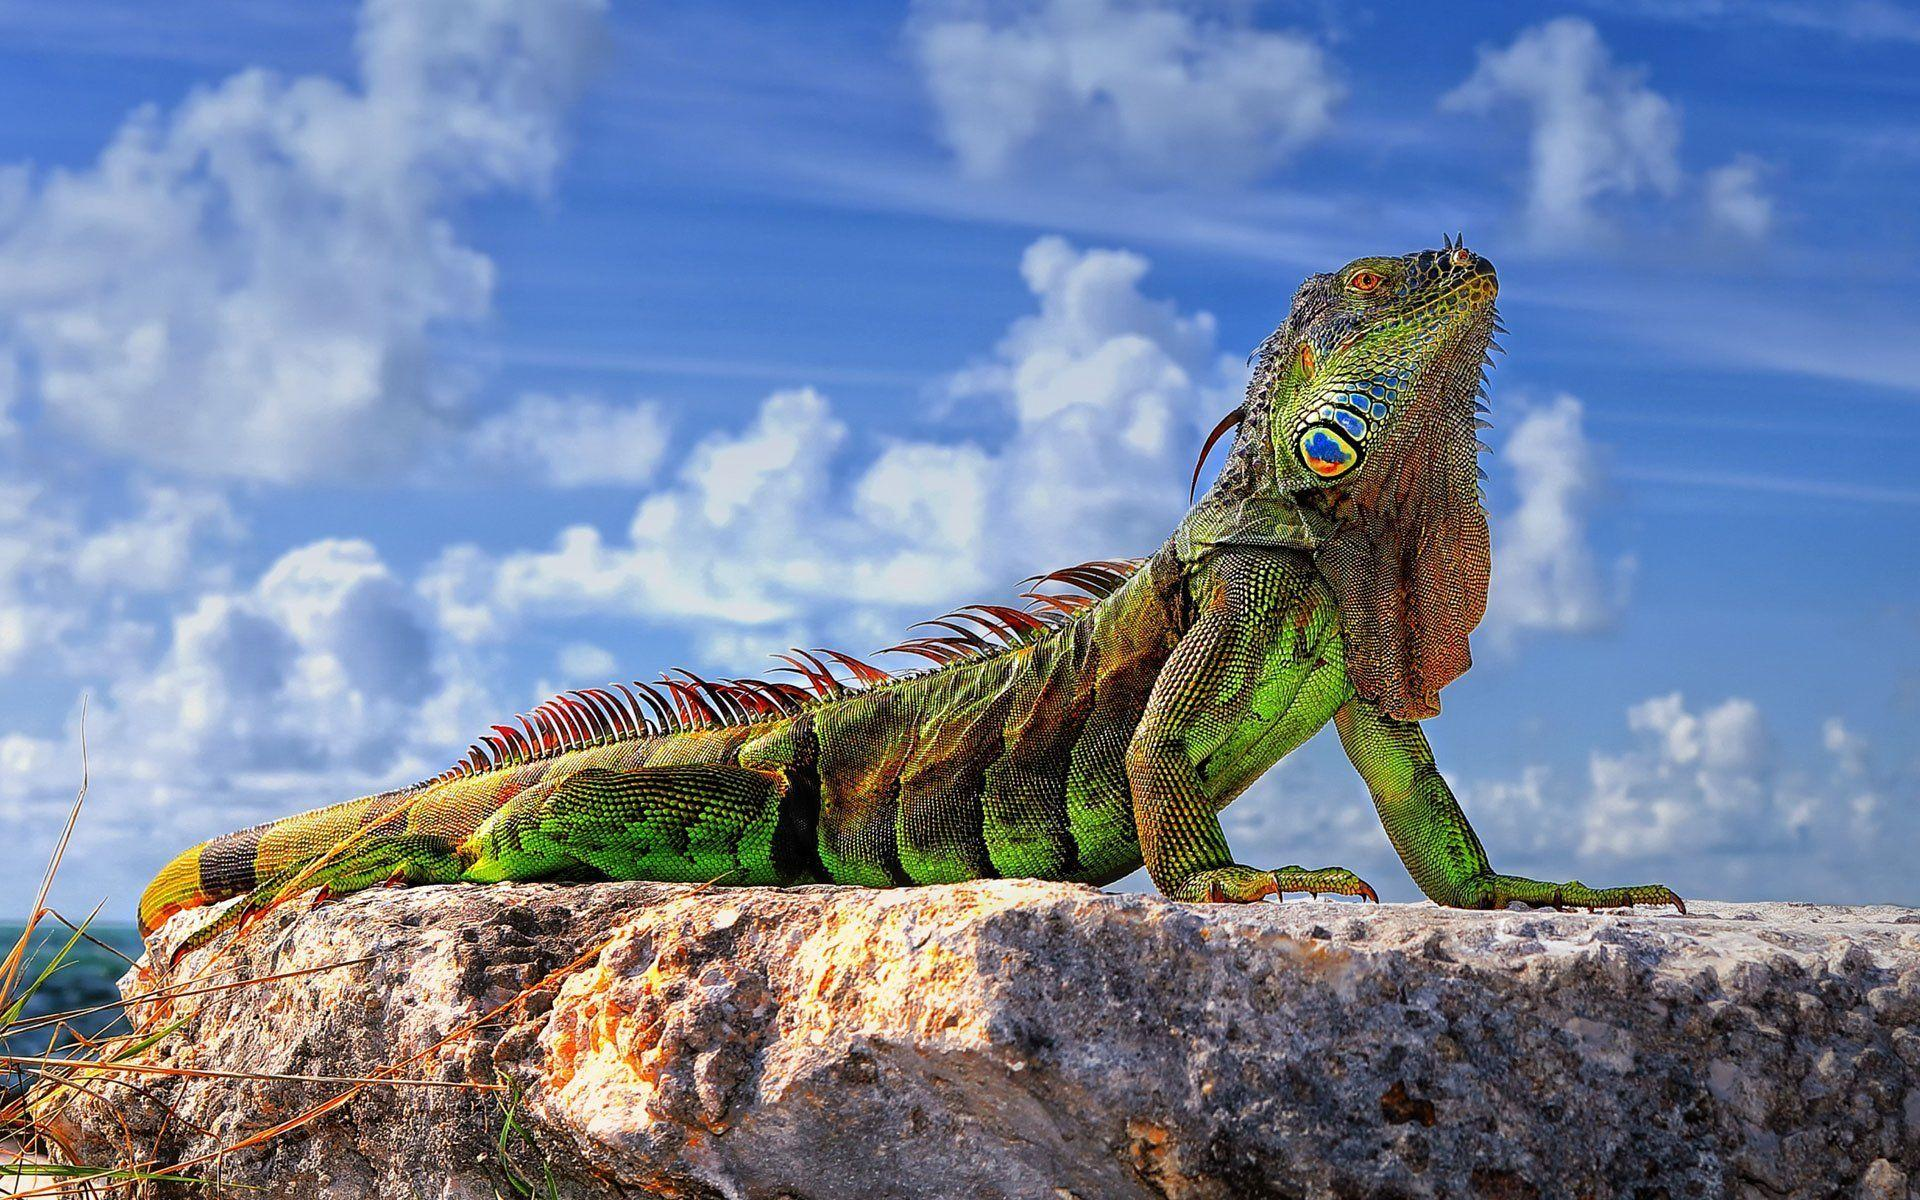 common iguana green iguana lizard stones sky HD wallpapers